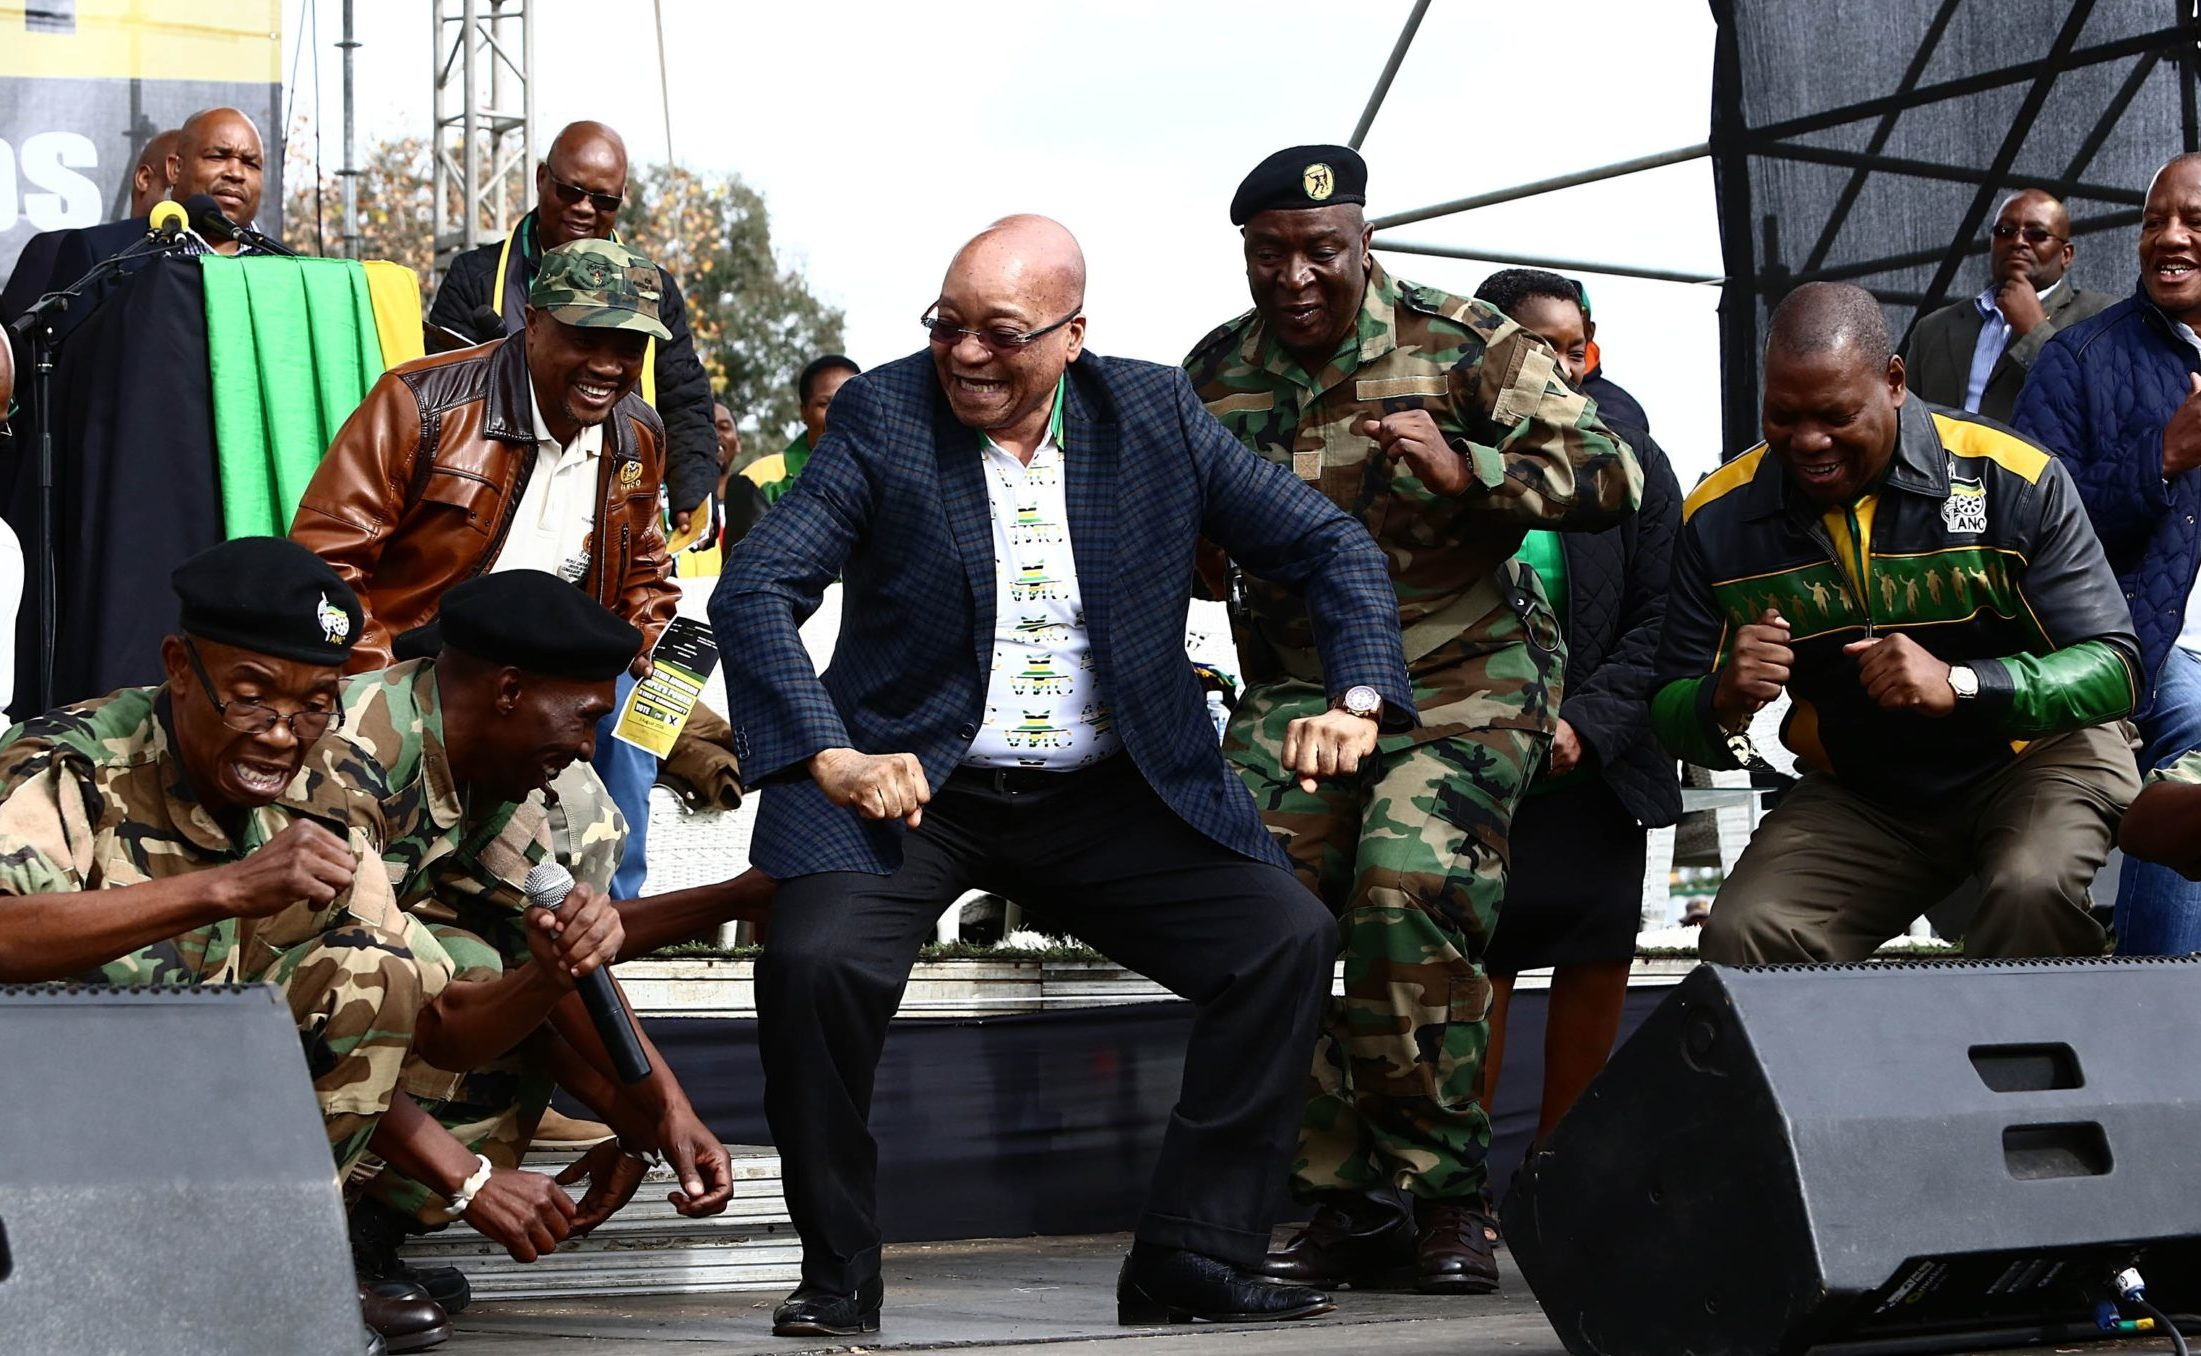 Zuma has dug his own grave and can expec…